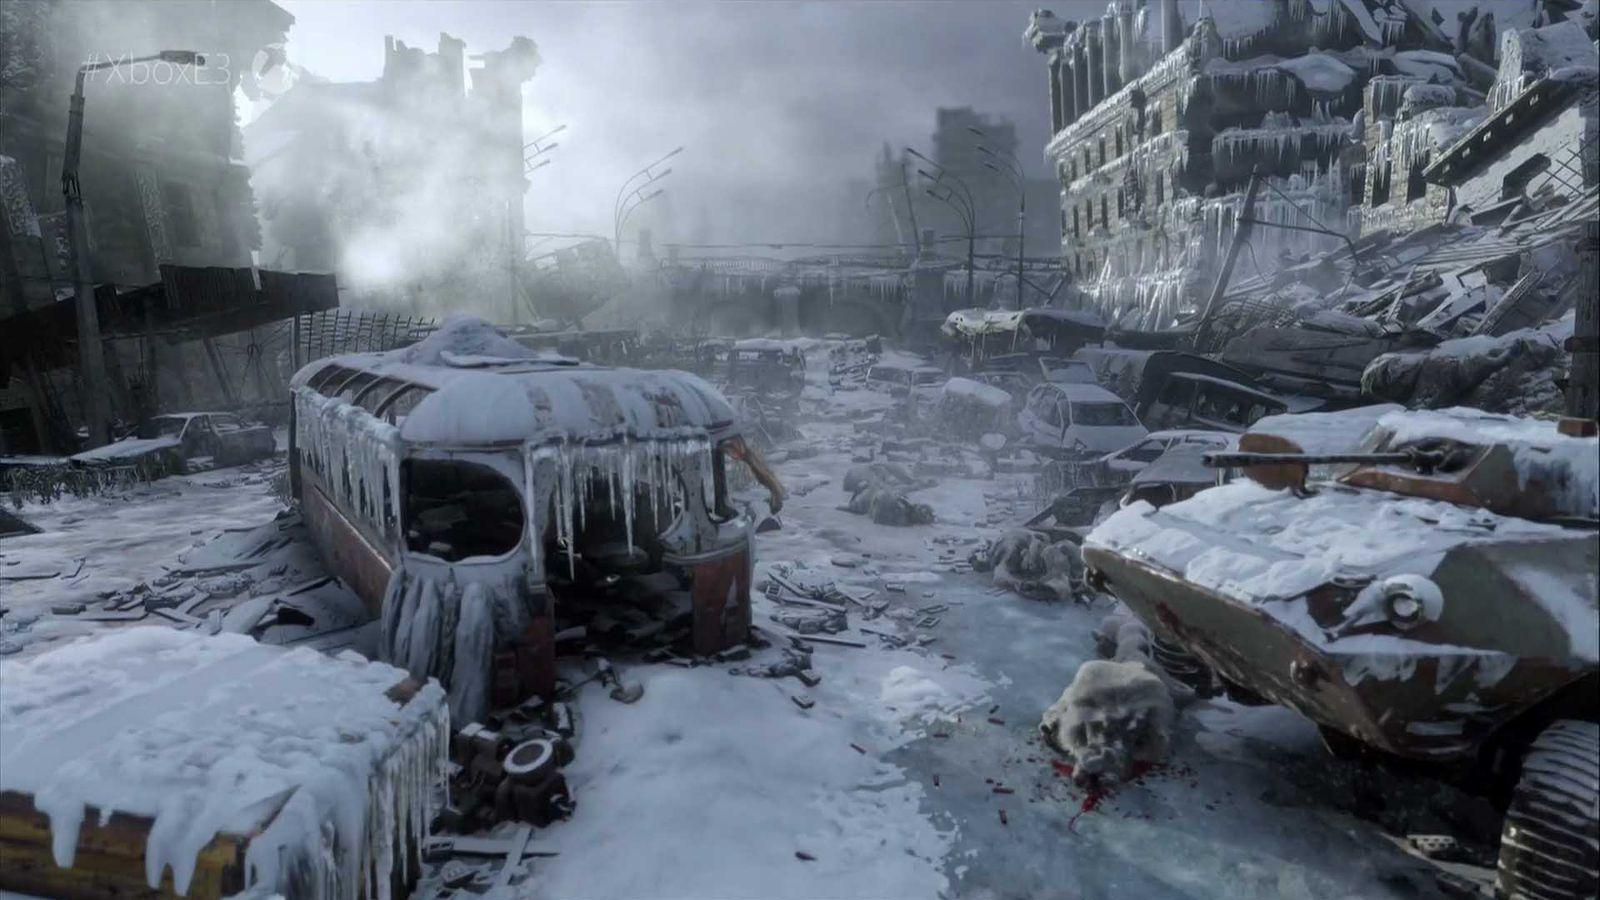 Metro: Exodus is a new open